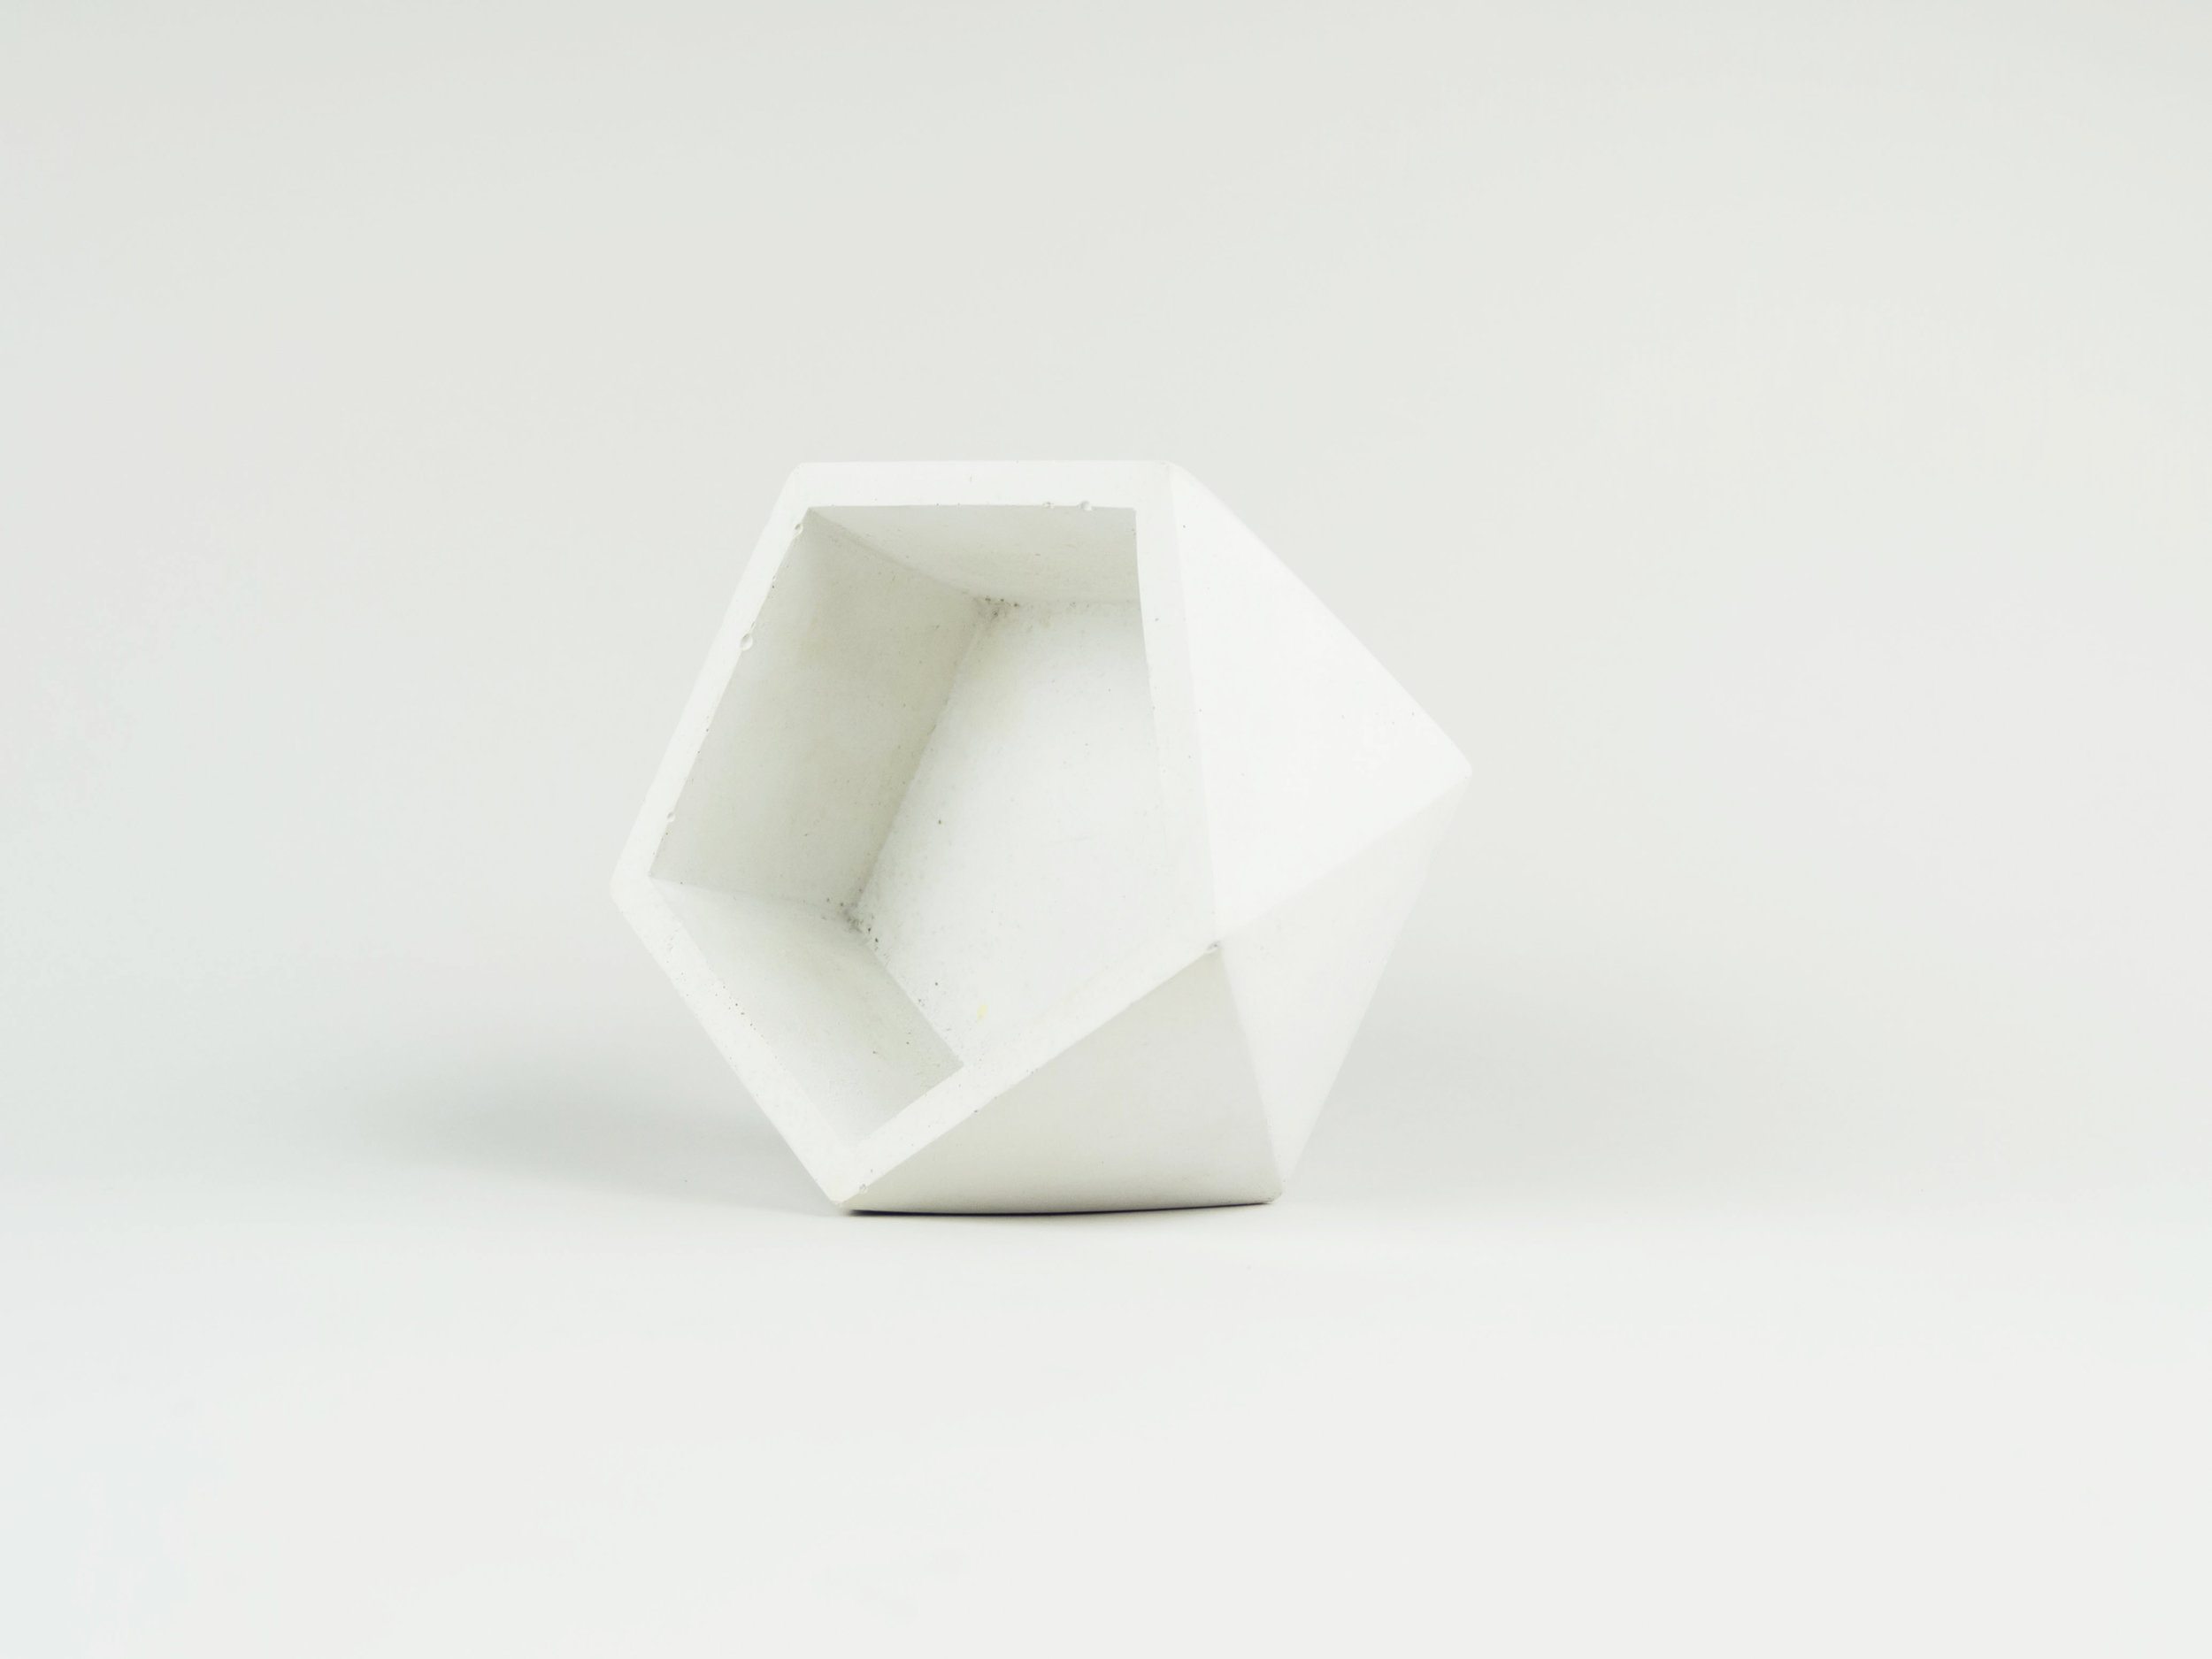 Minimal-White-Concrete-Vessel-for-Succulents-and-home-accessories.jpg